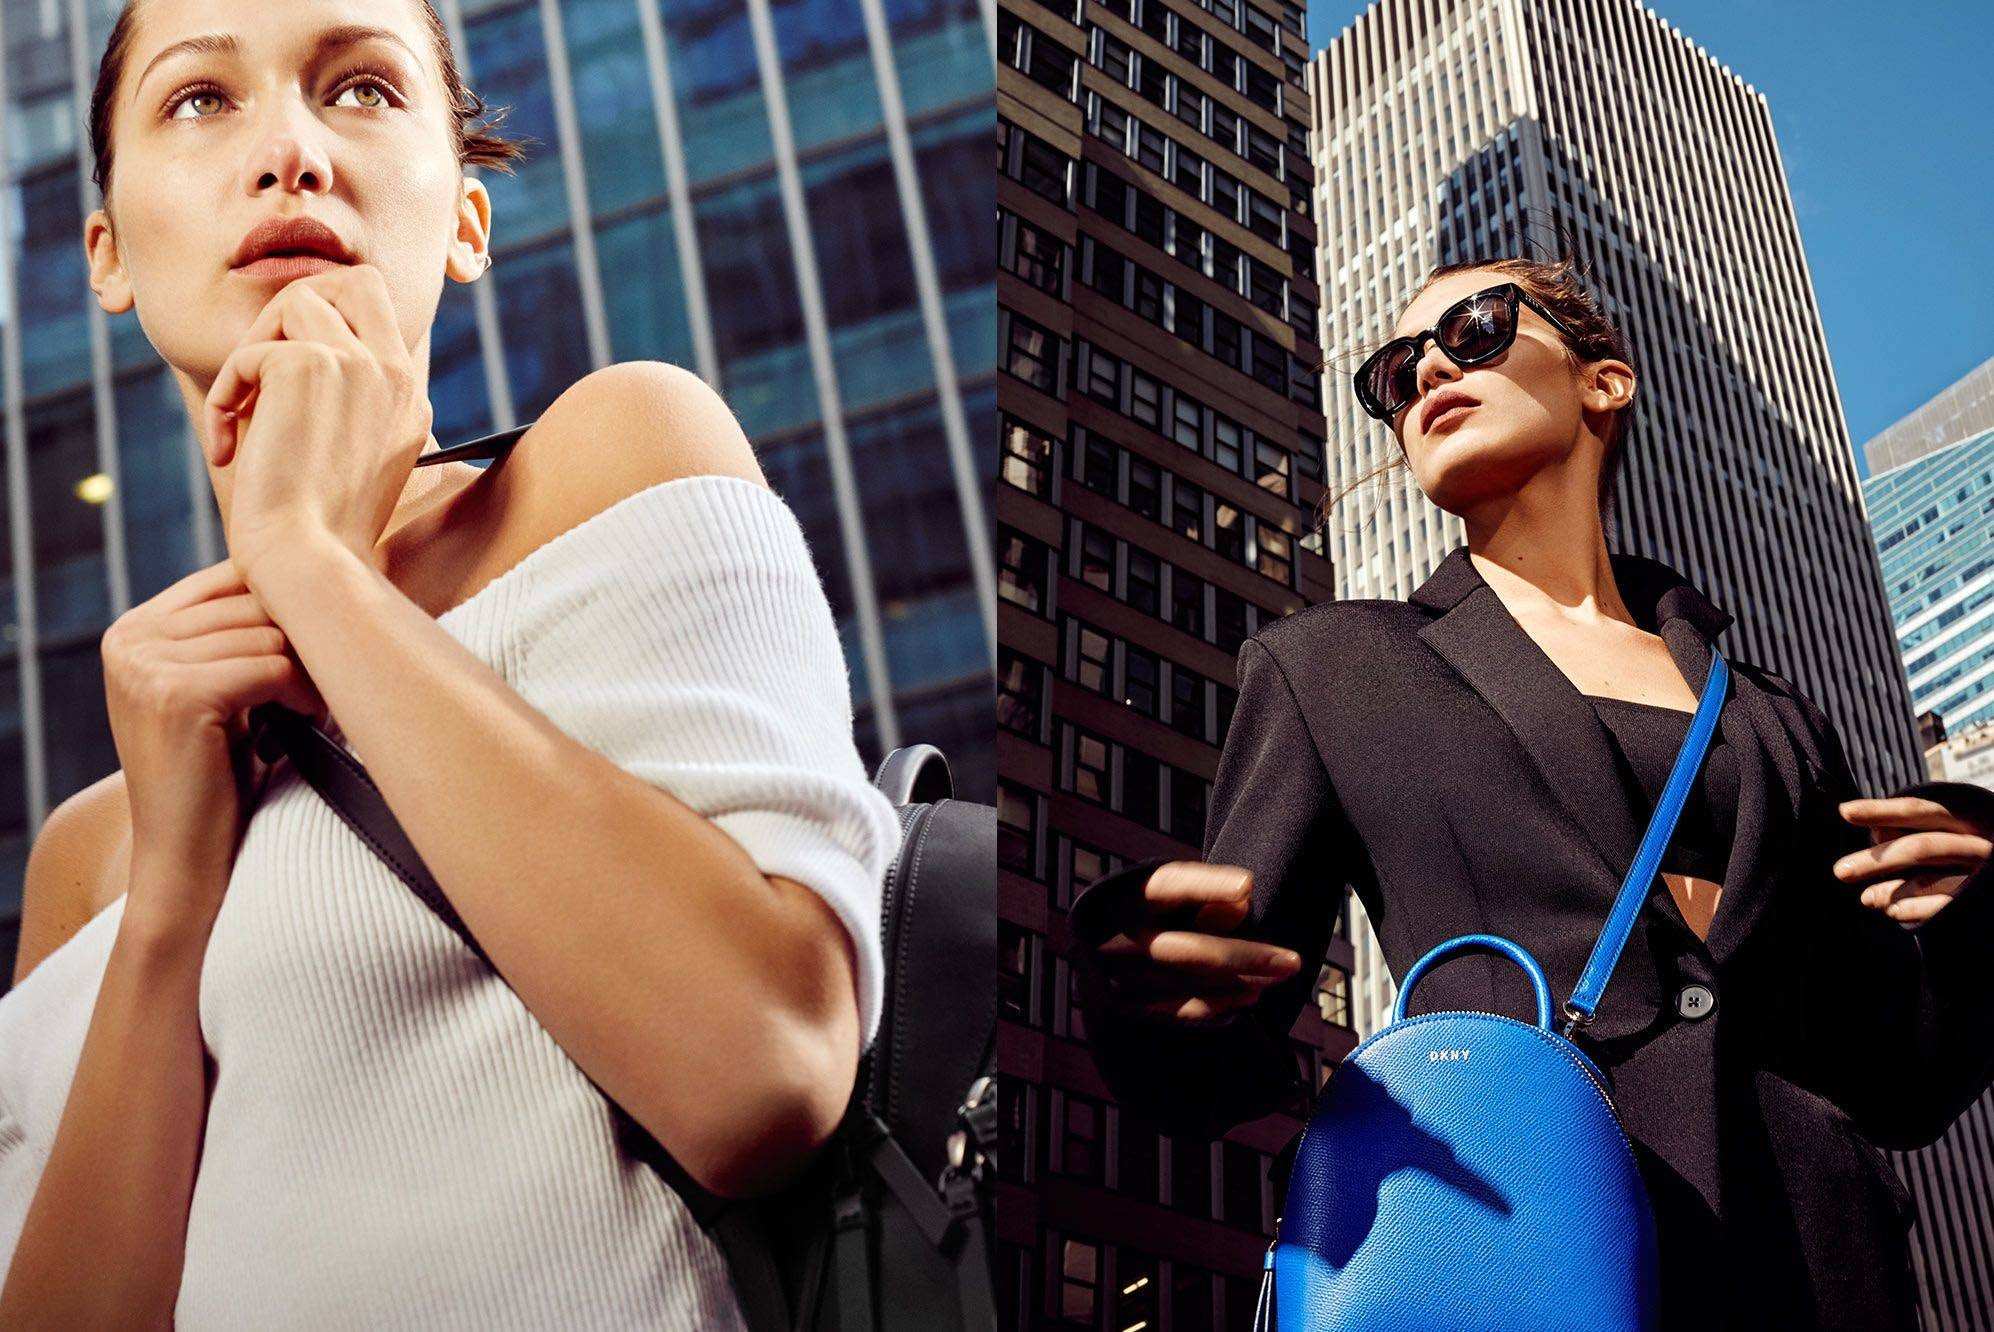 What's Next for DKNY?